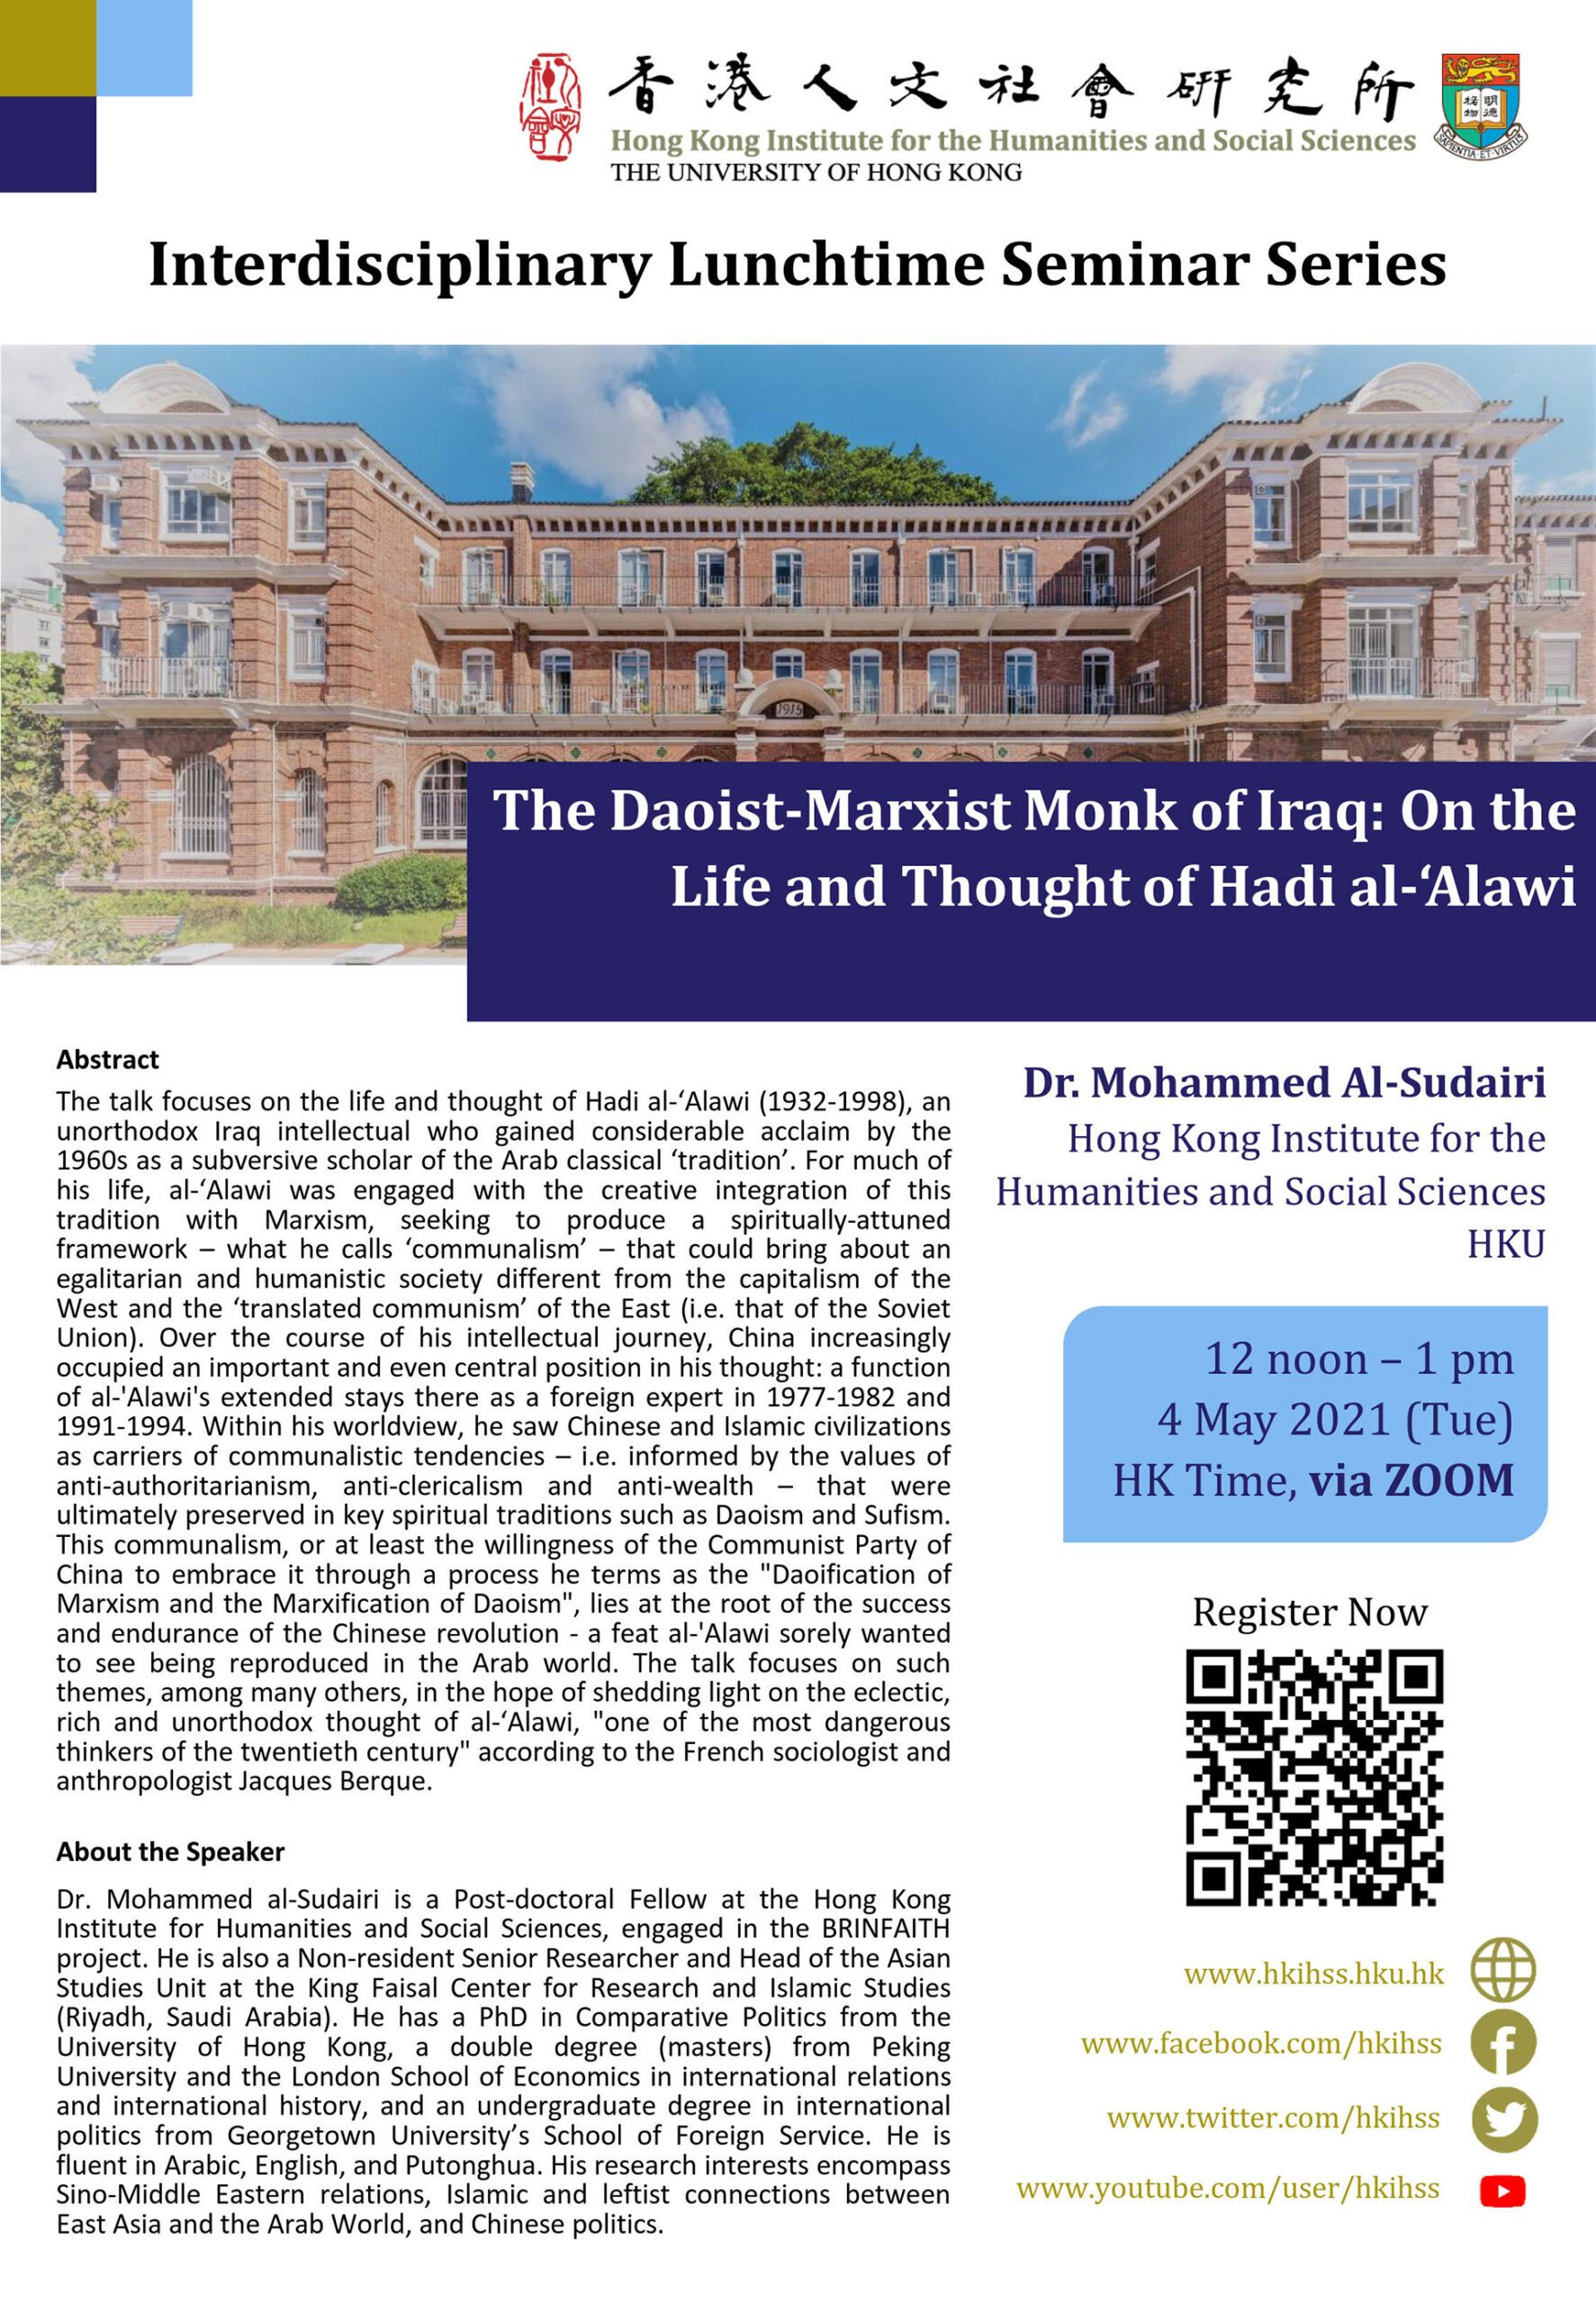 """Interdisciplinary Lunchtime Seminar on """"The Daoist-Marxist Monk of Iraq: On the Life and Thought of Hadi al-'Alawi"""" by Dr. Mohammed Al-Sudairi (May 4, 2021)"""